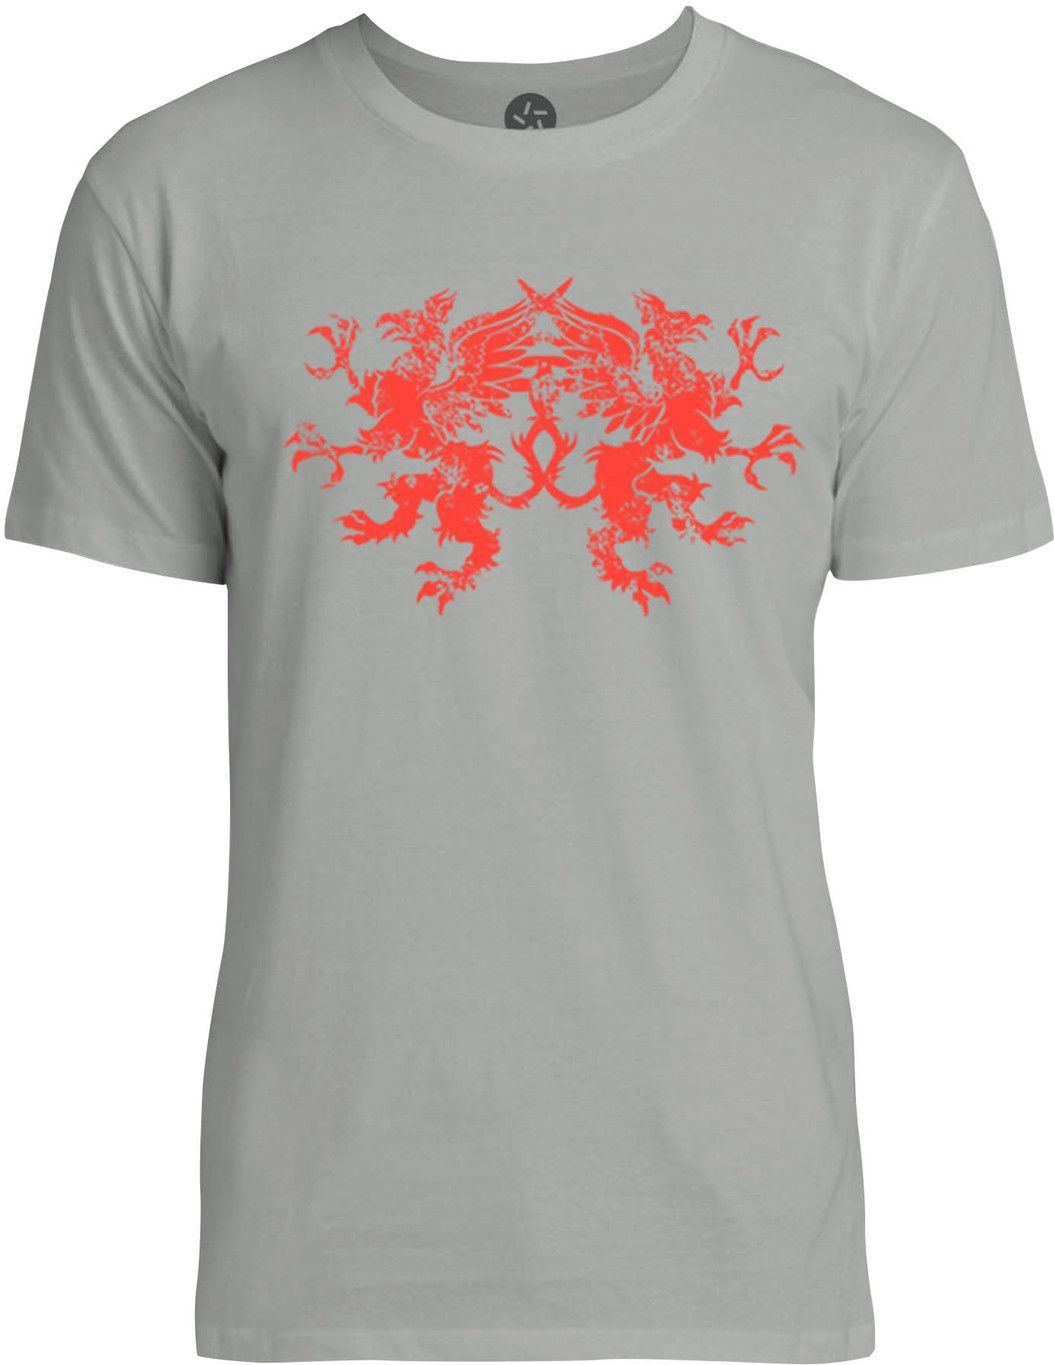 Griffins (Red) Mens Fine Jersey T-Shirt